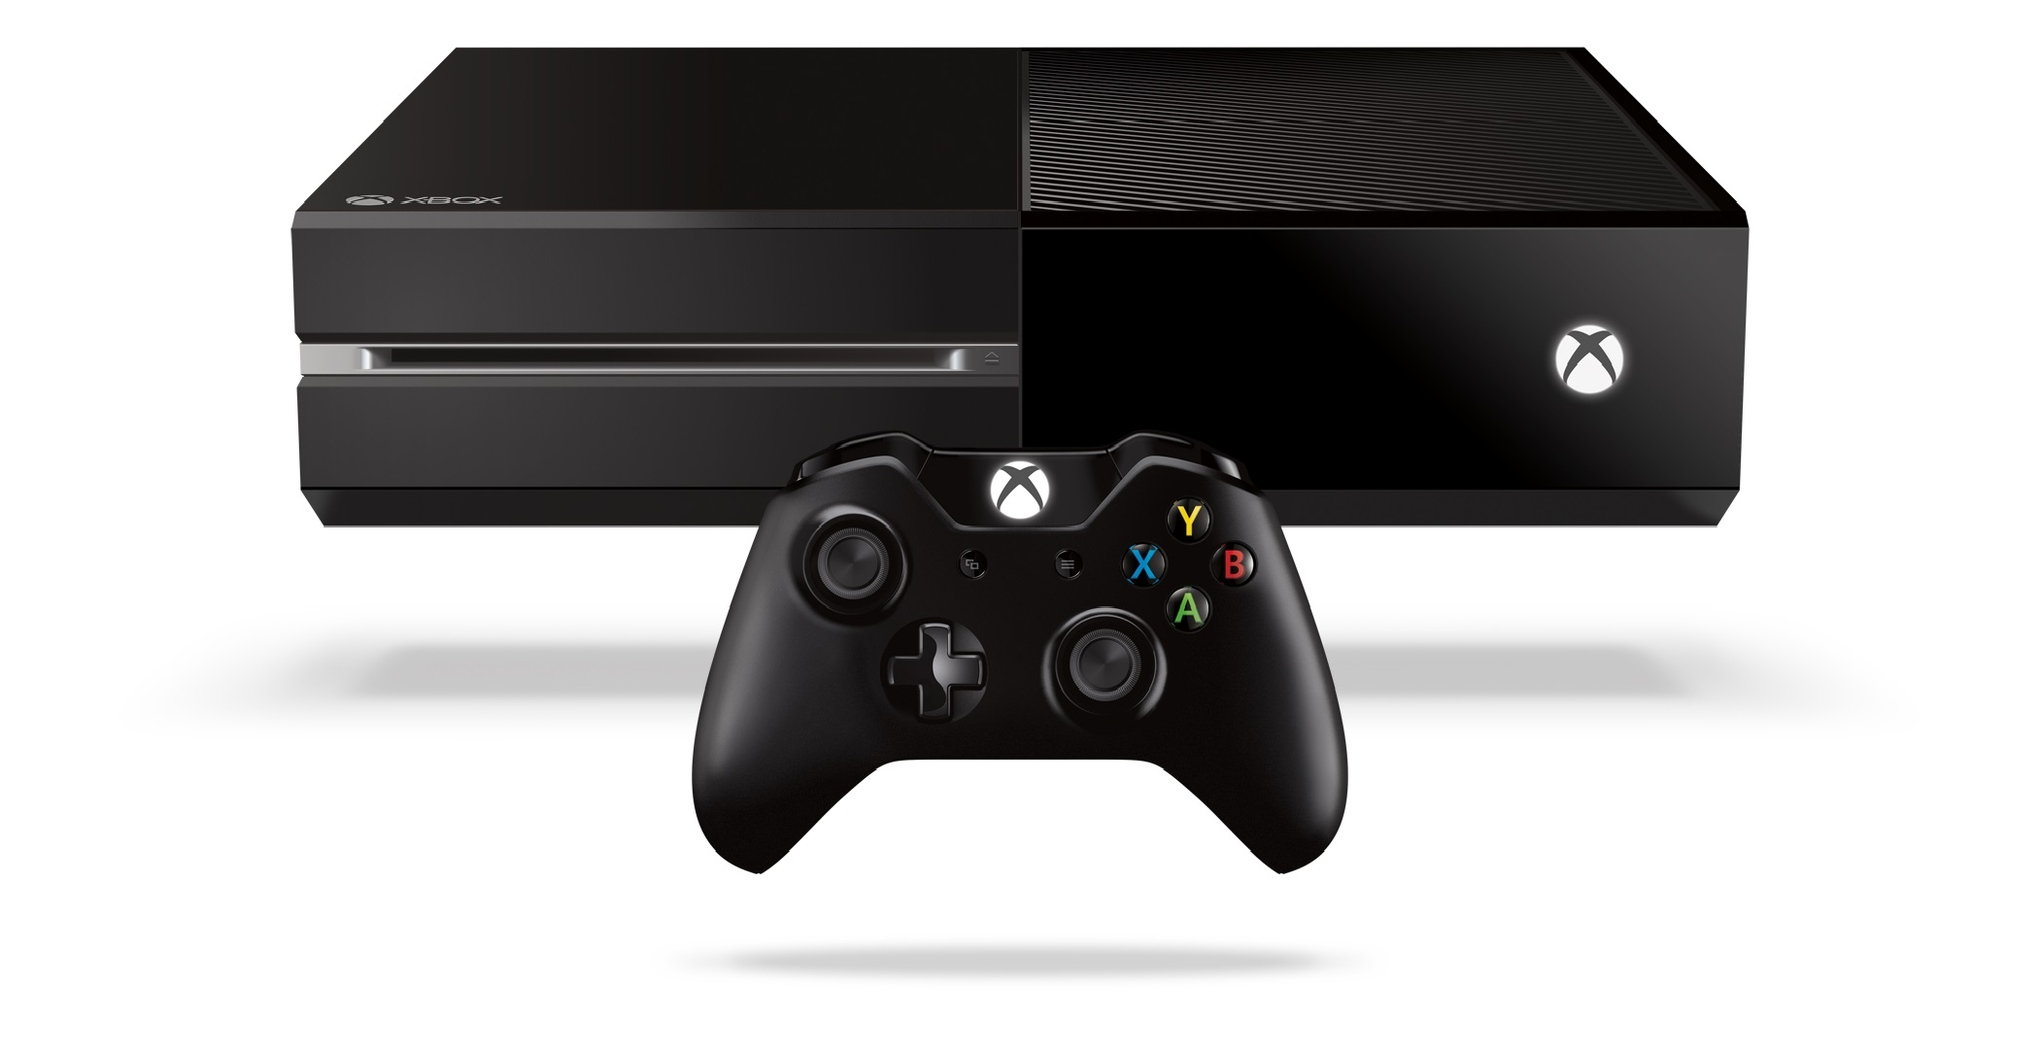 Xbox One devs now have access to horsepower once reserved for Kinect (correction)